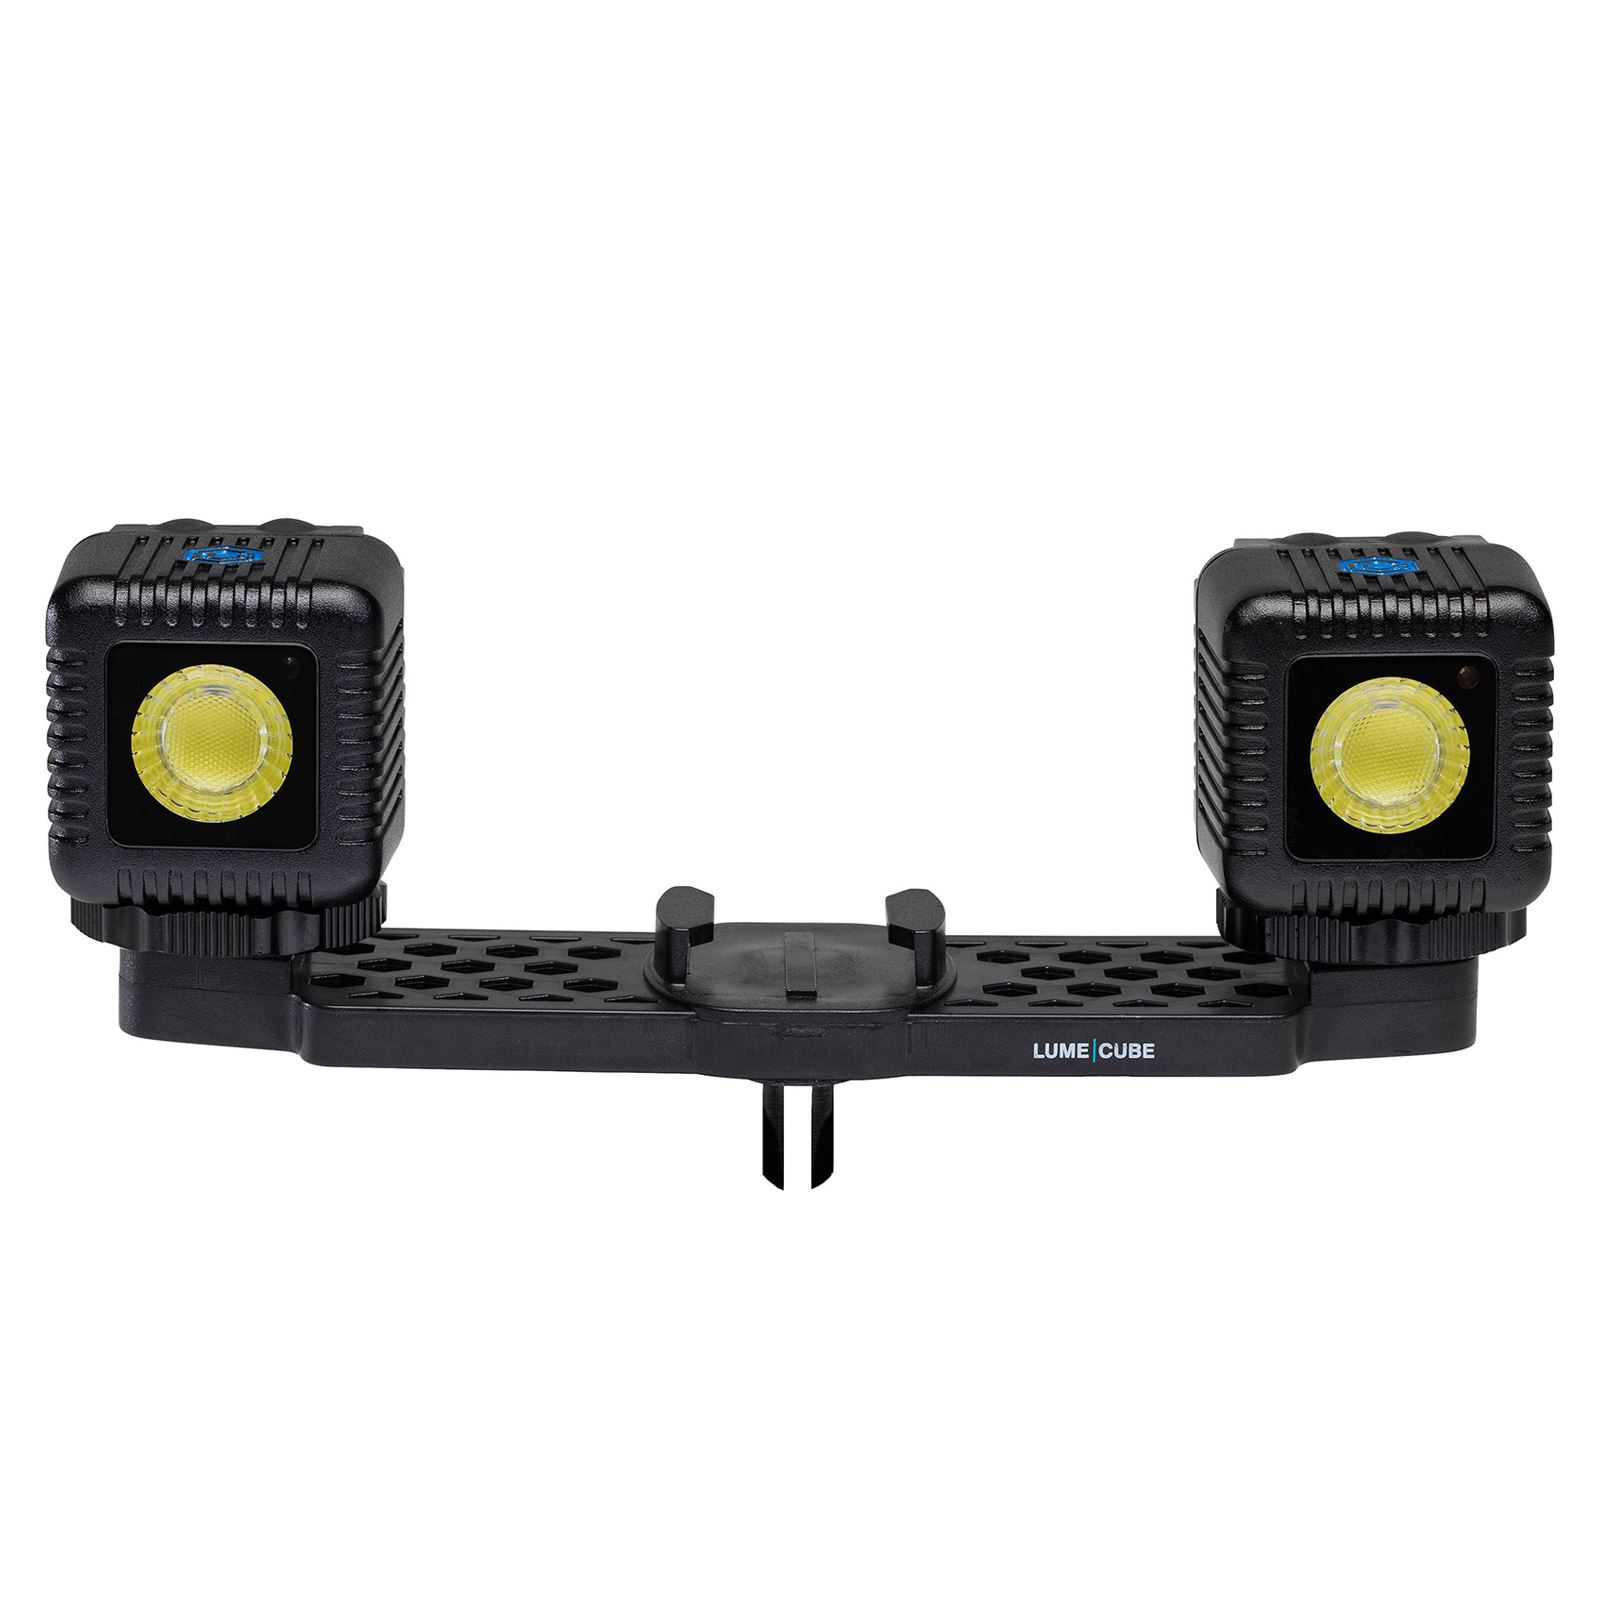 Lume Cube Kit For GoPro